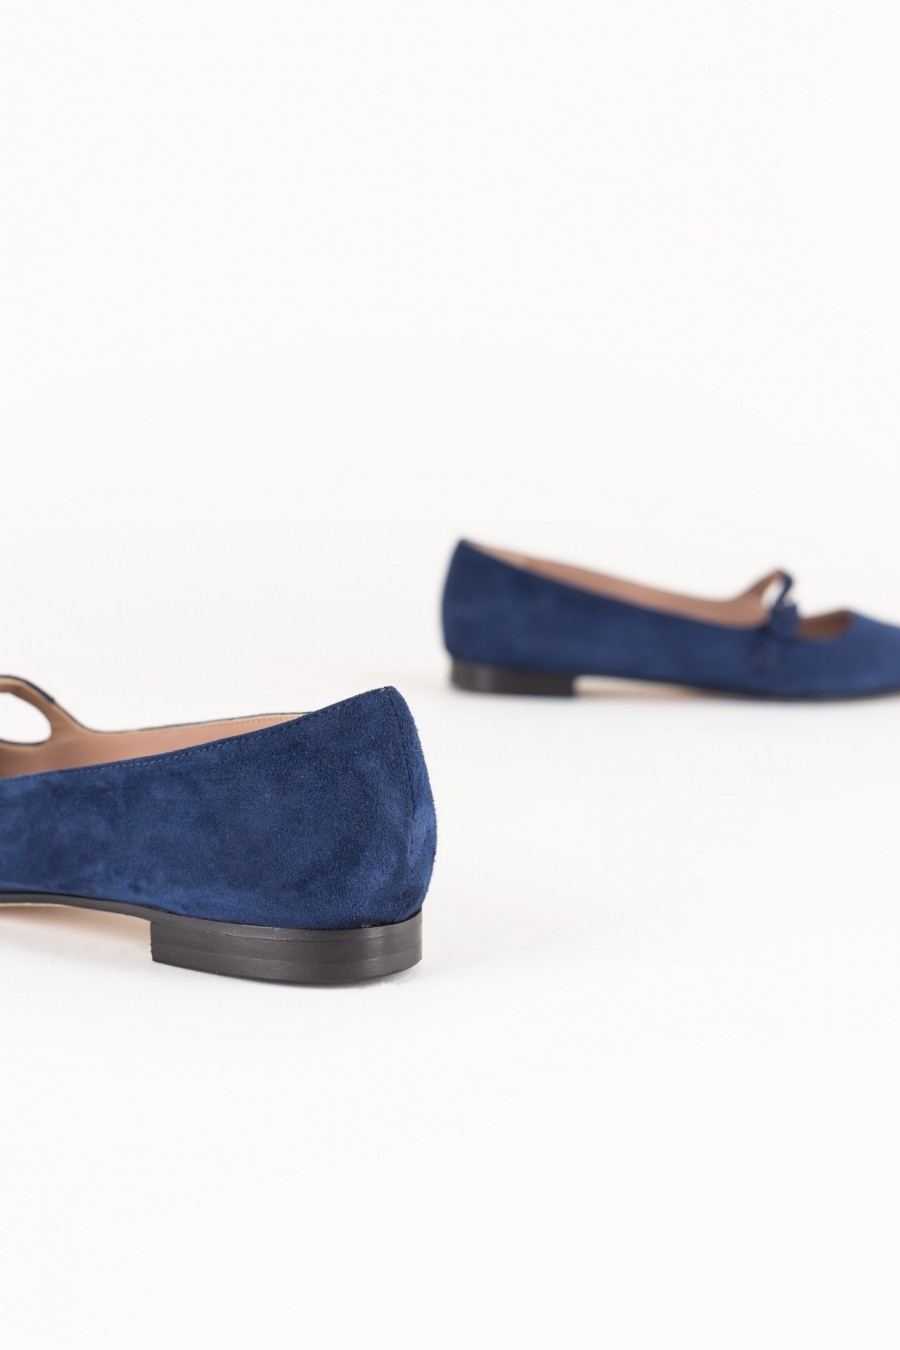 Blue pointy flats with buckle